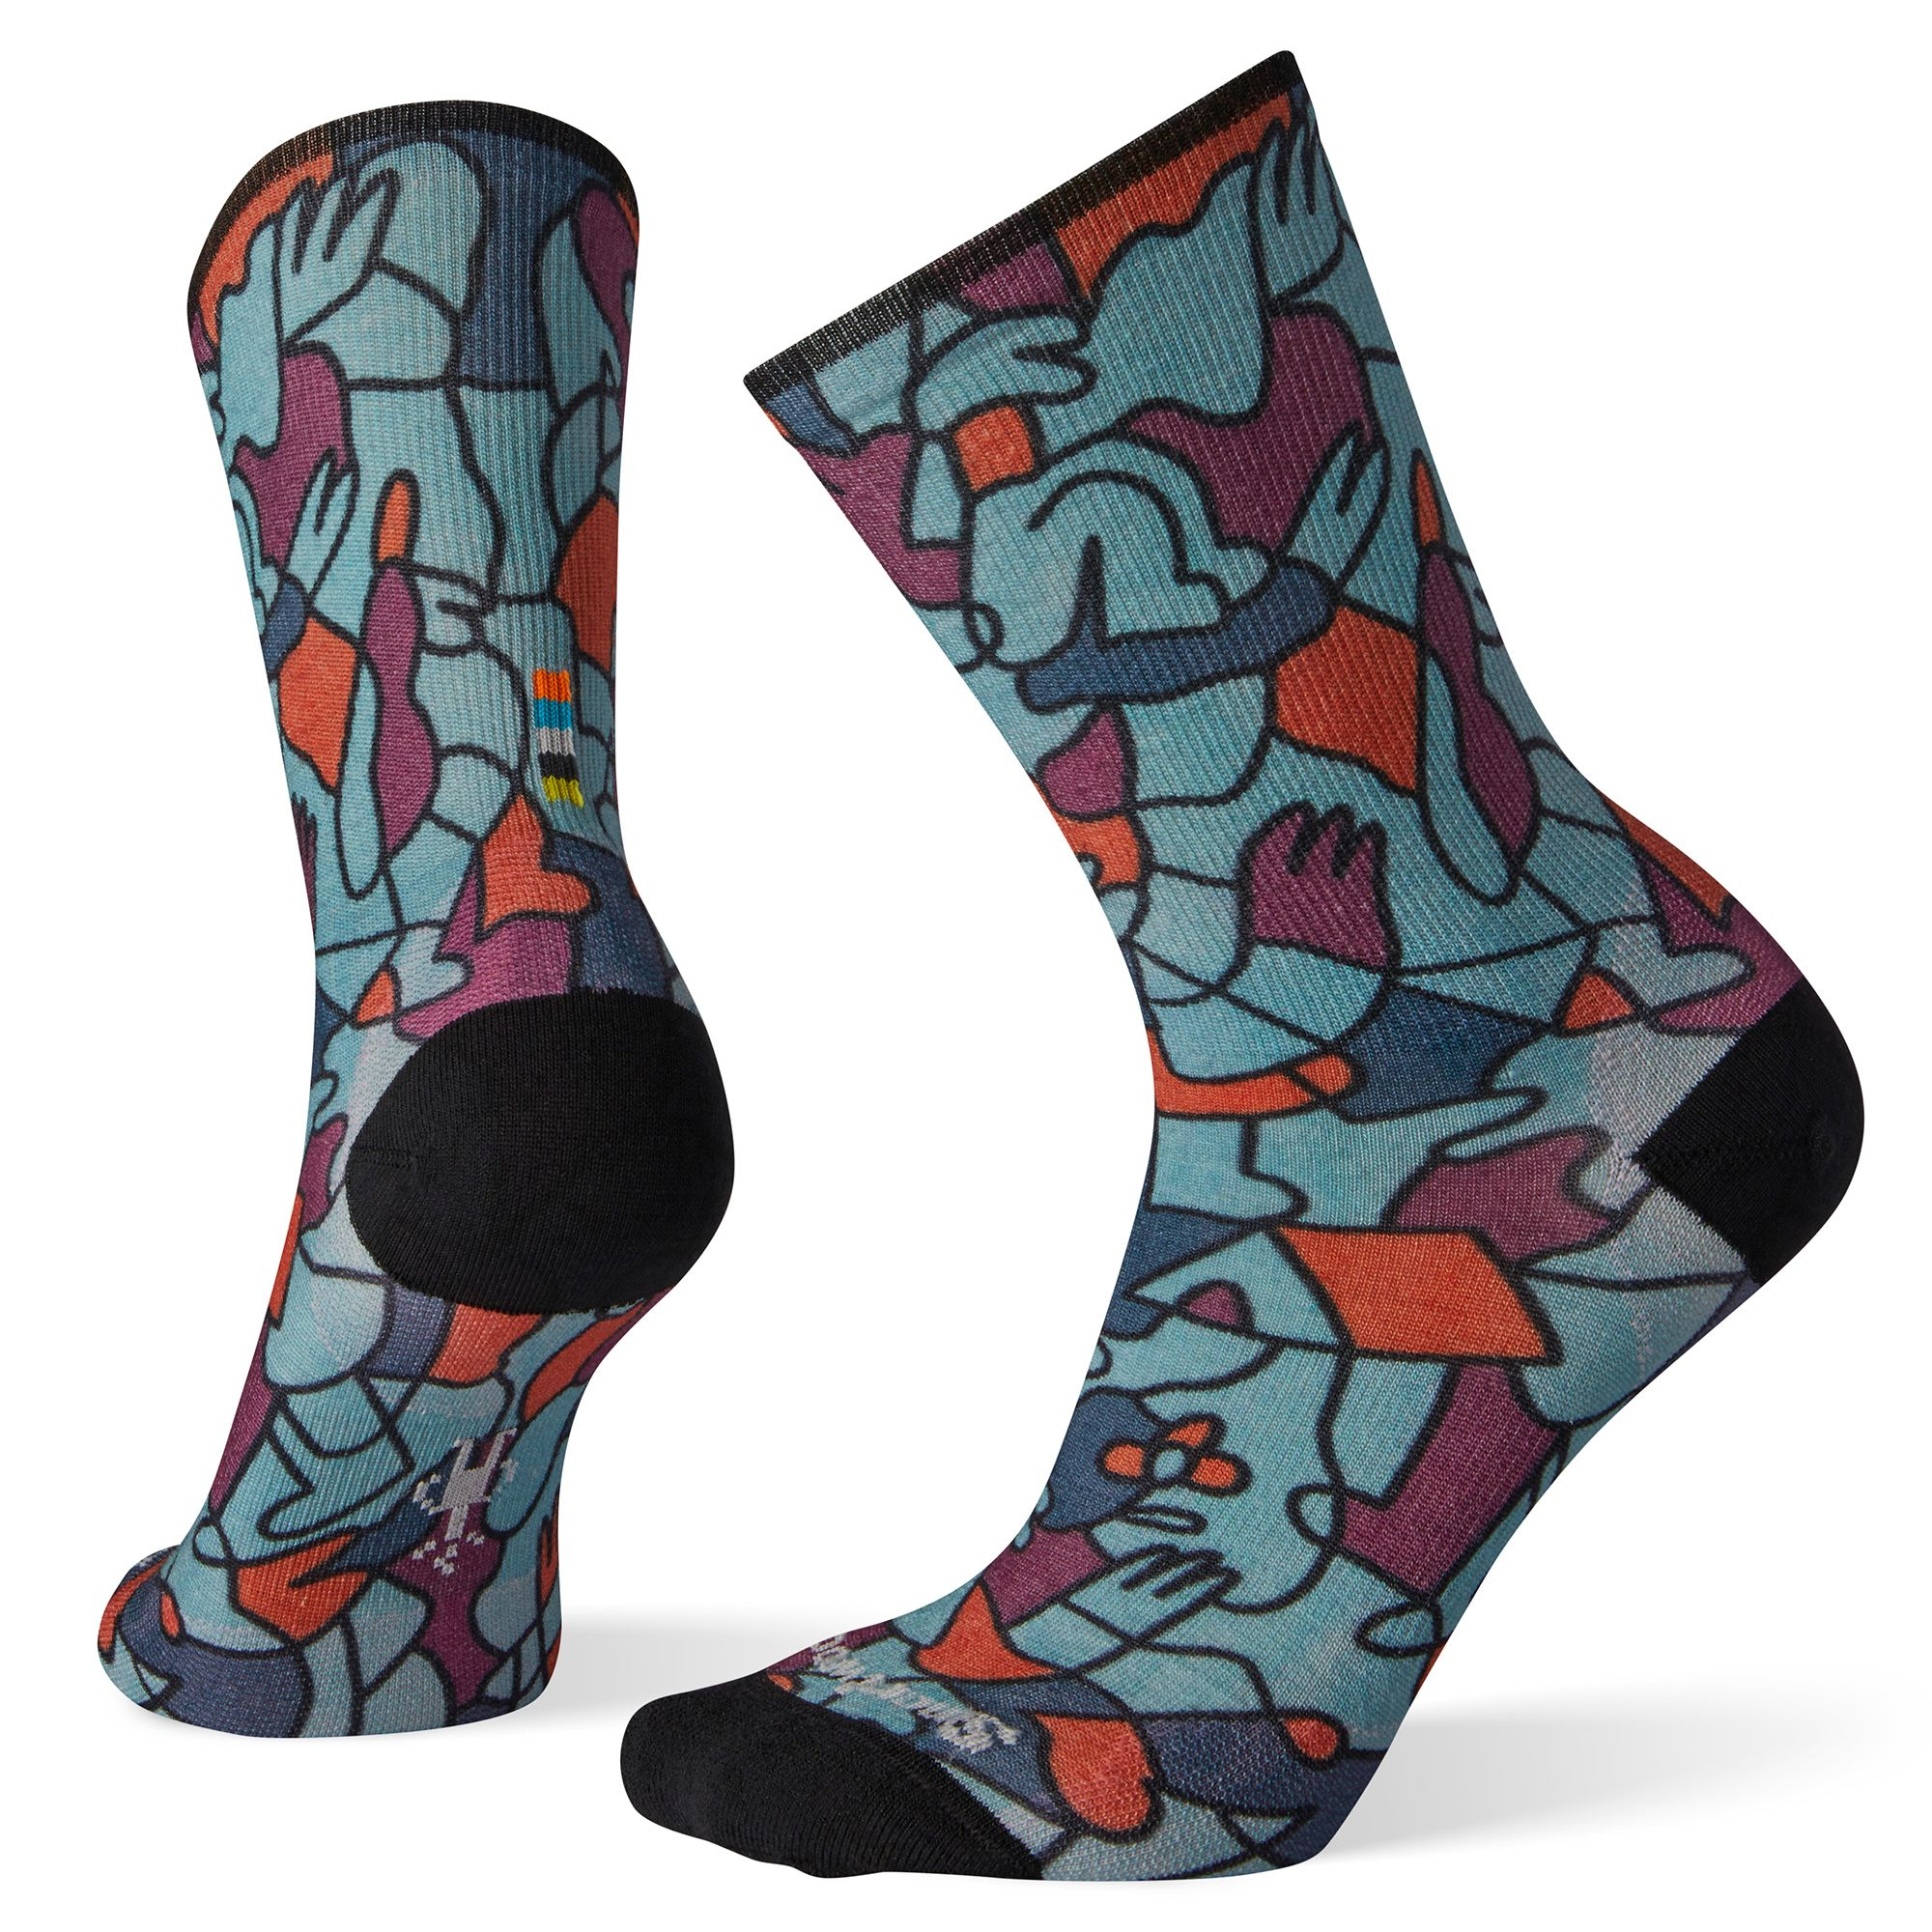 Women's Curated Balabar Crew Socks